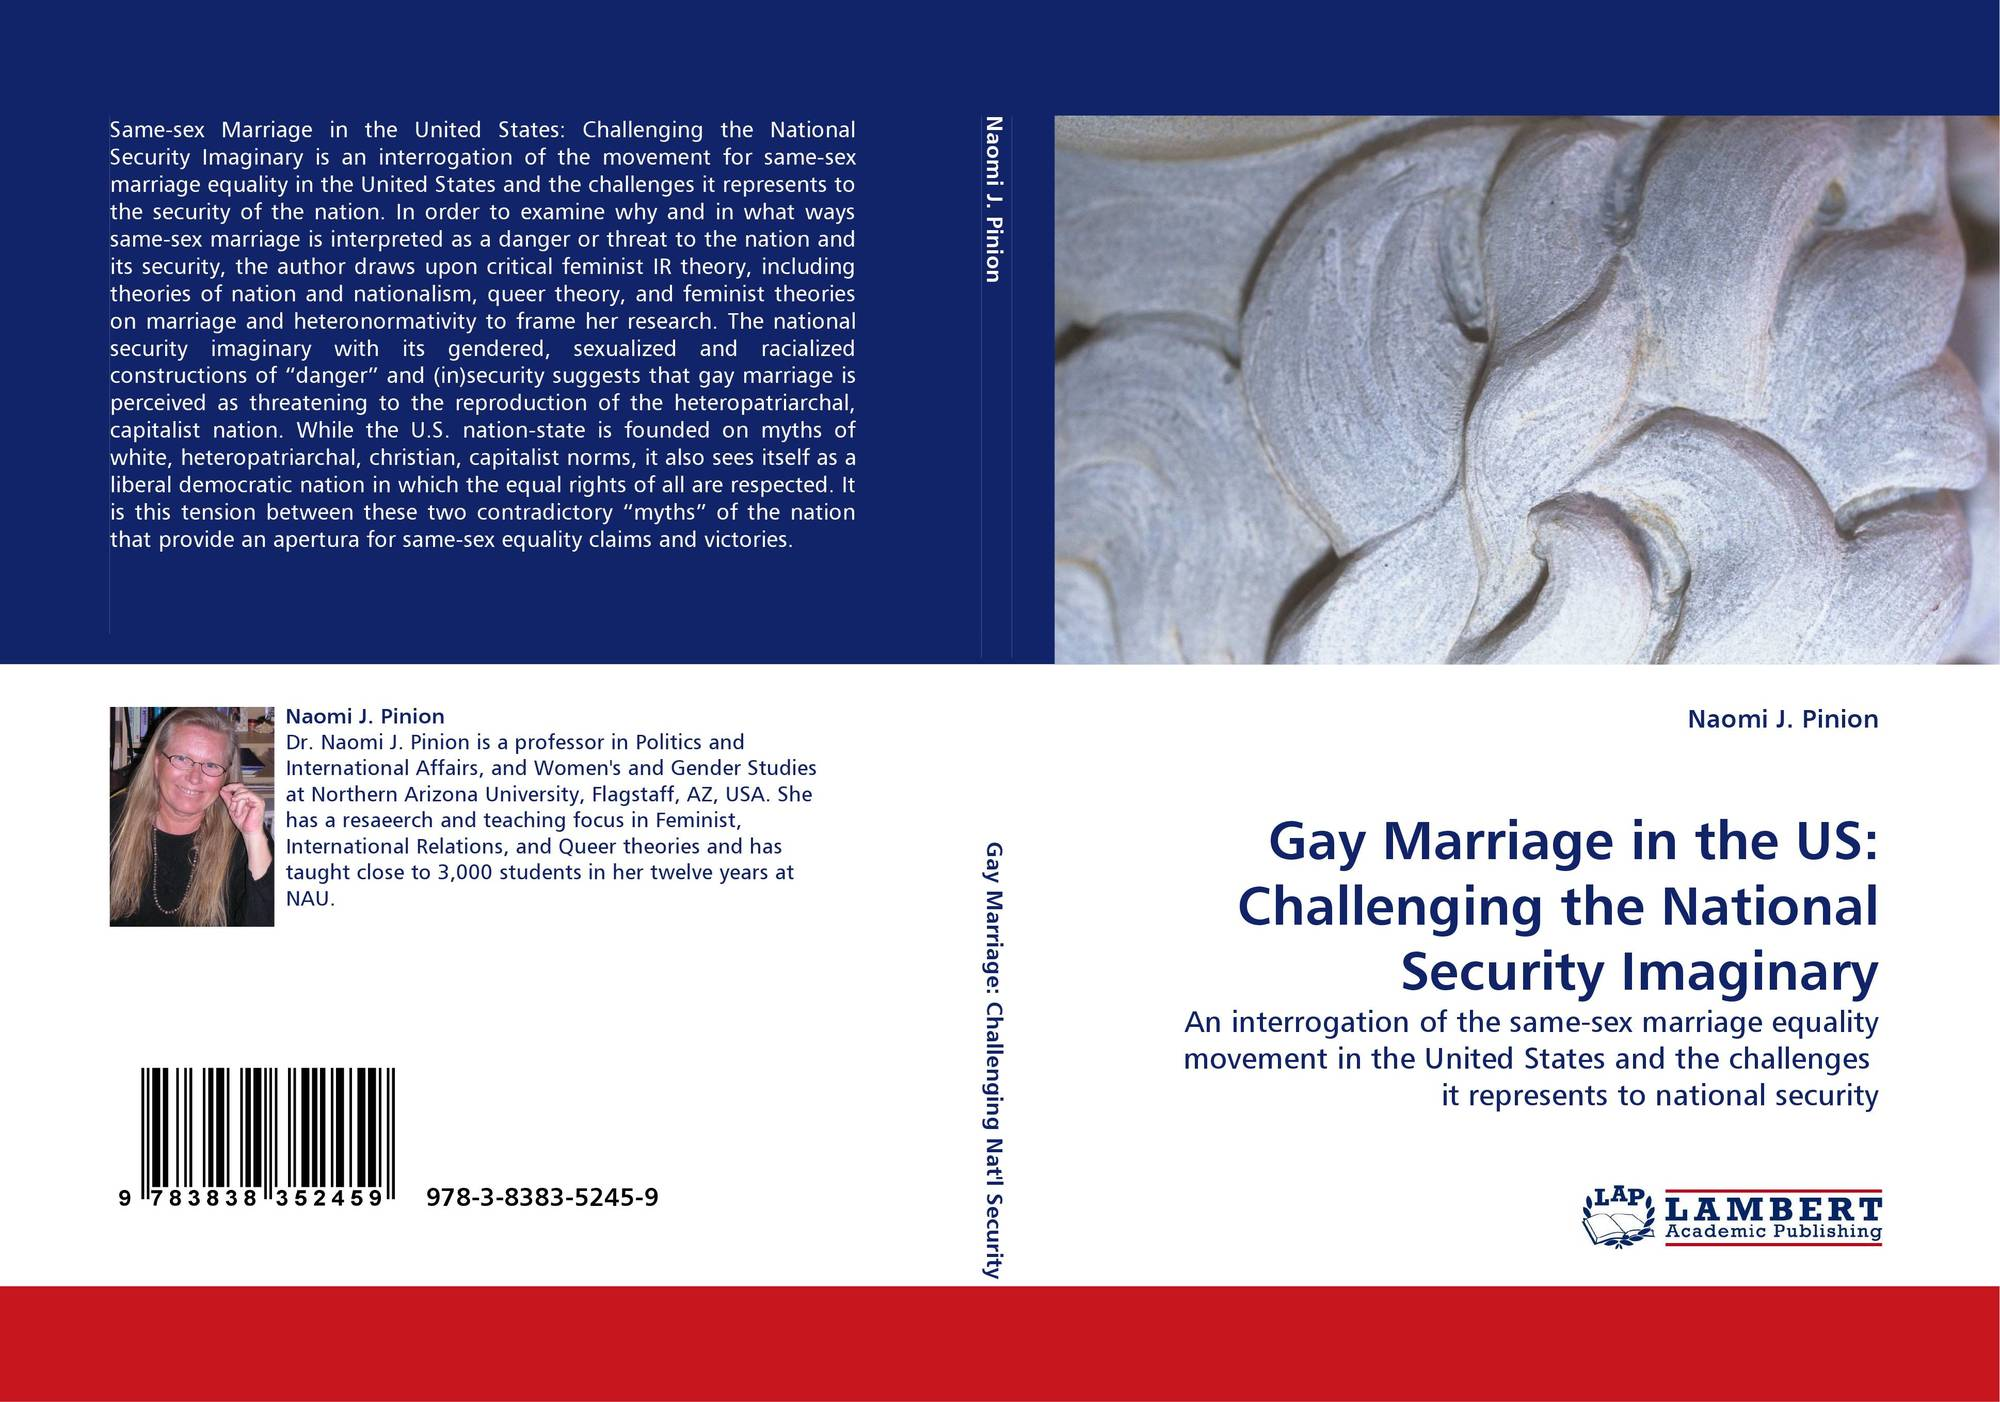 gay marriage sociology perspective Marriage, sociologically speaking, is formal social, sexual, legal, and economic relationship that serves as the basis for the social institution of family the definition of marriage in sociology types, characteristics, and the social function of the institution.